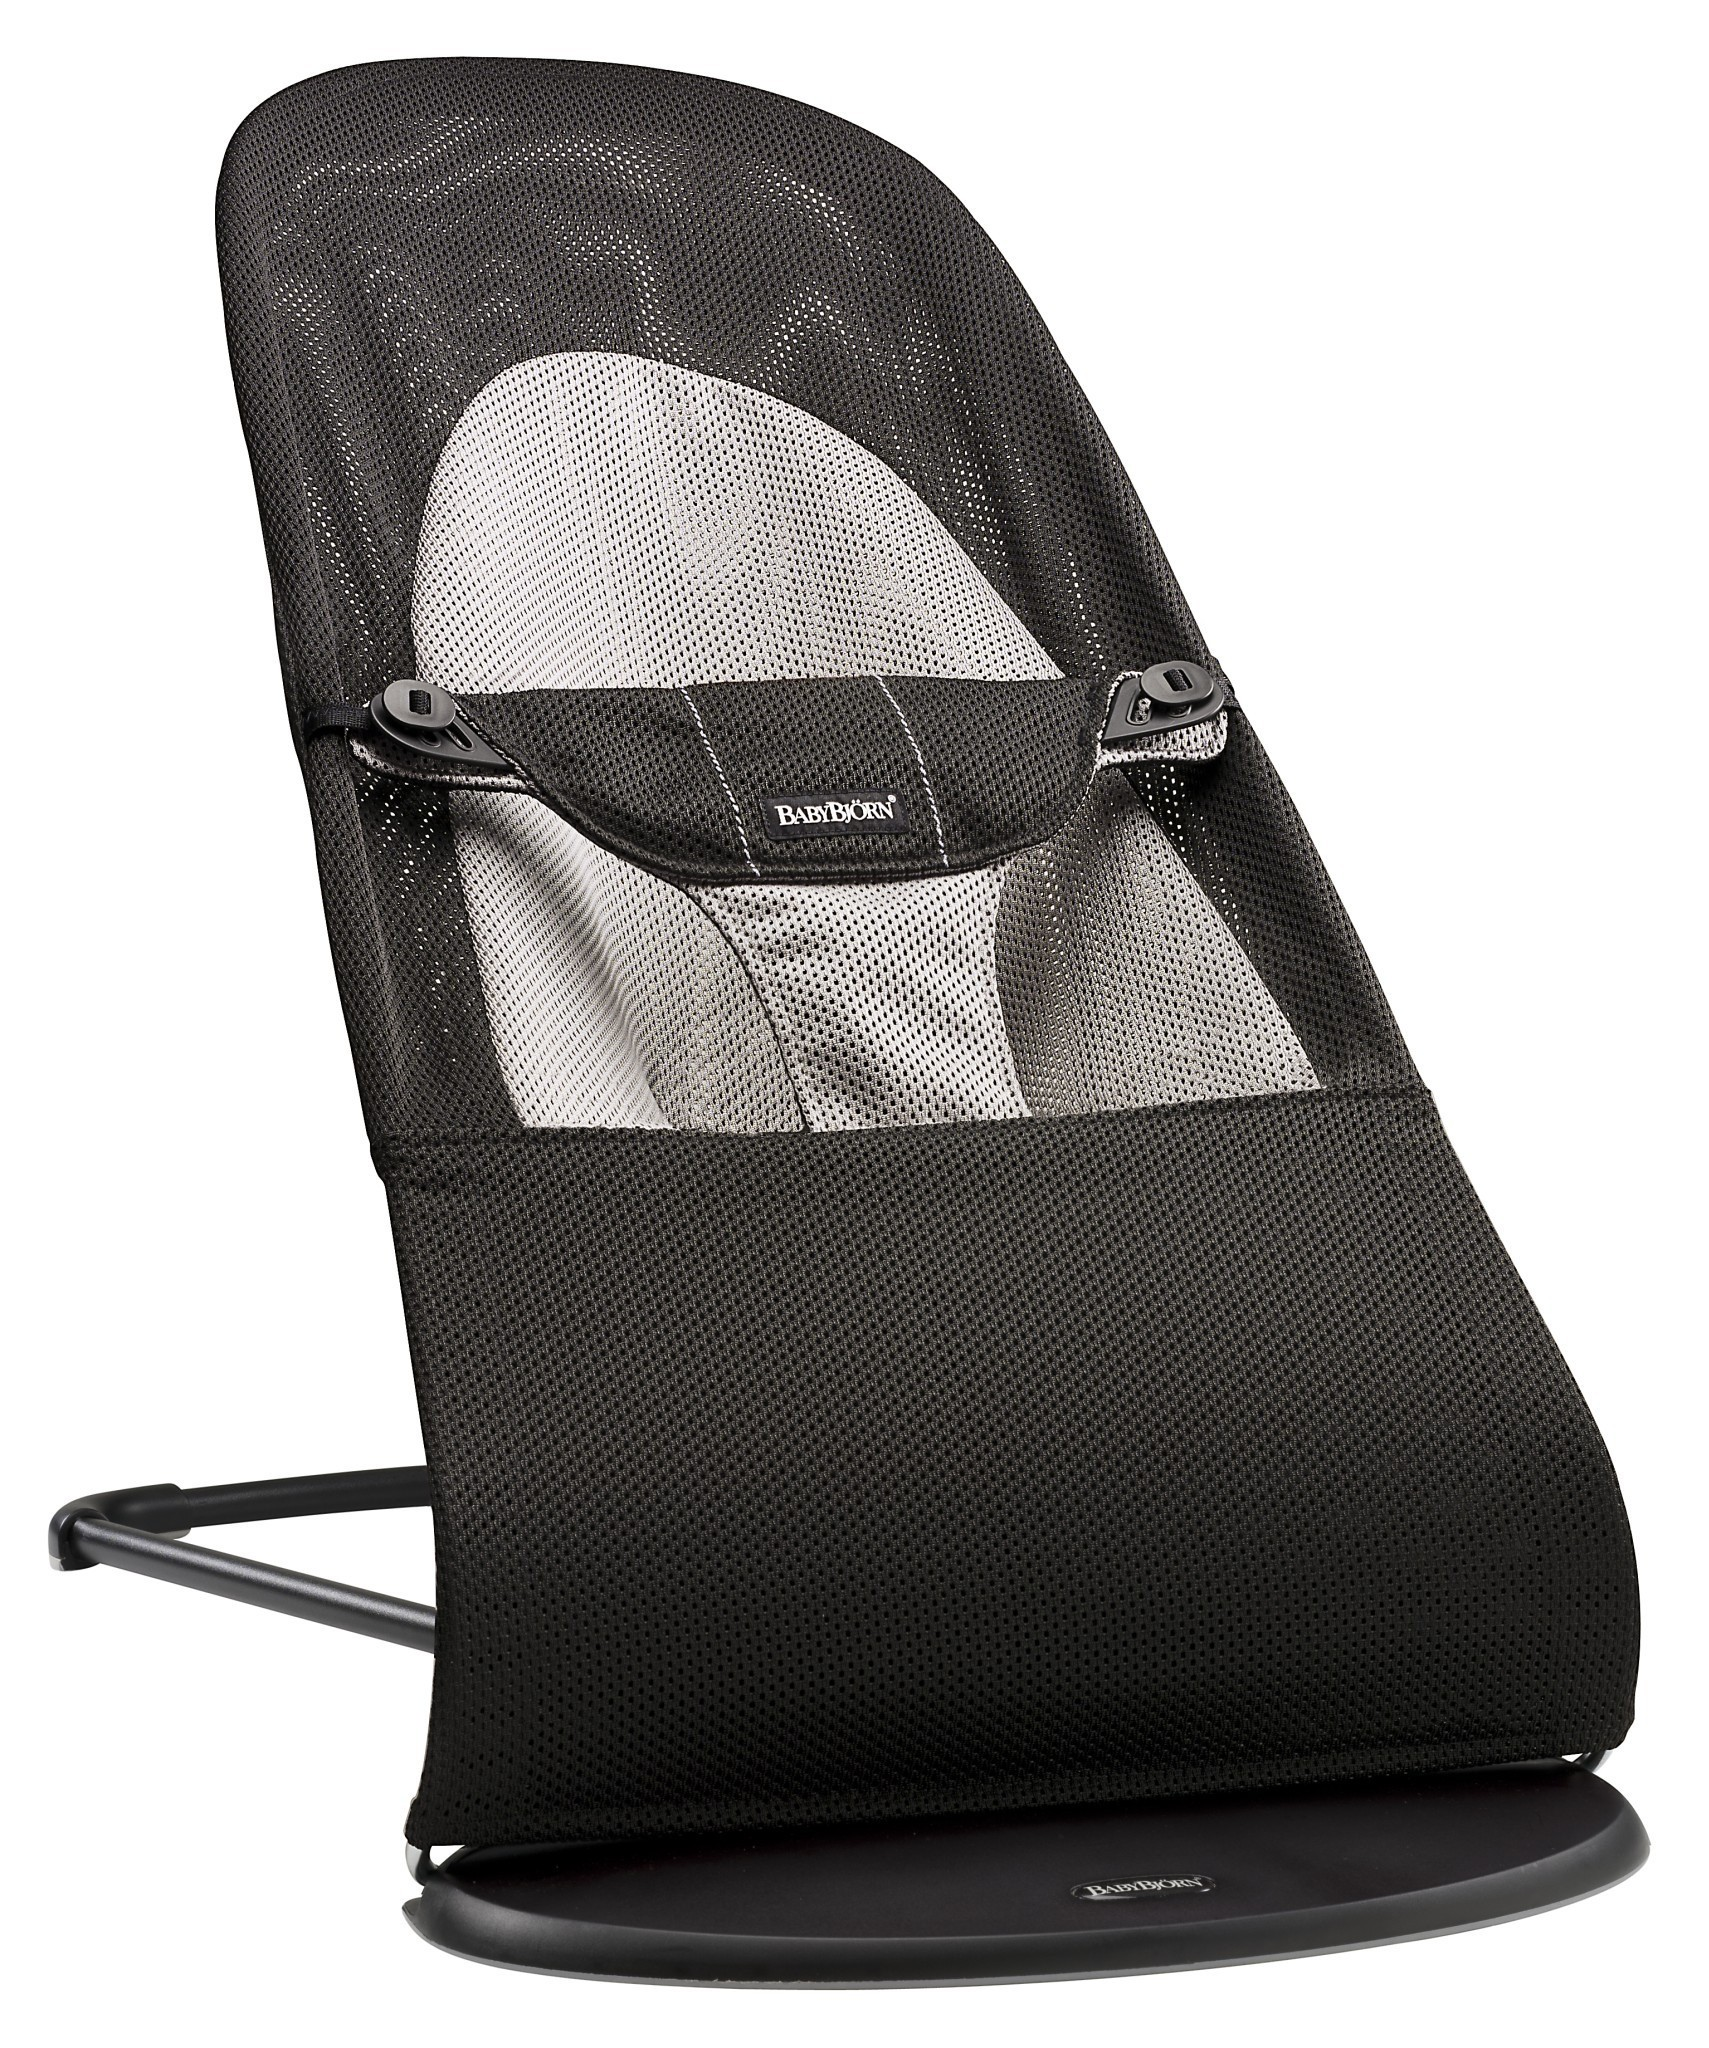 BABYBJÖRN - Bouncer Balance Soft MESH - Black / Grey